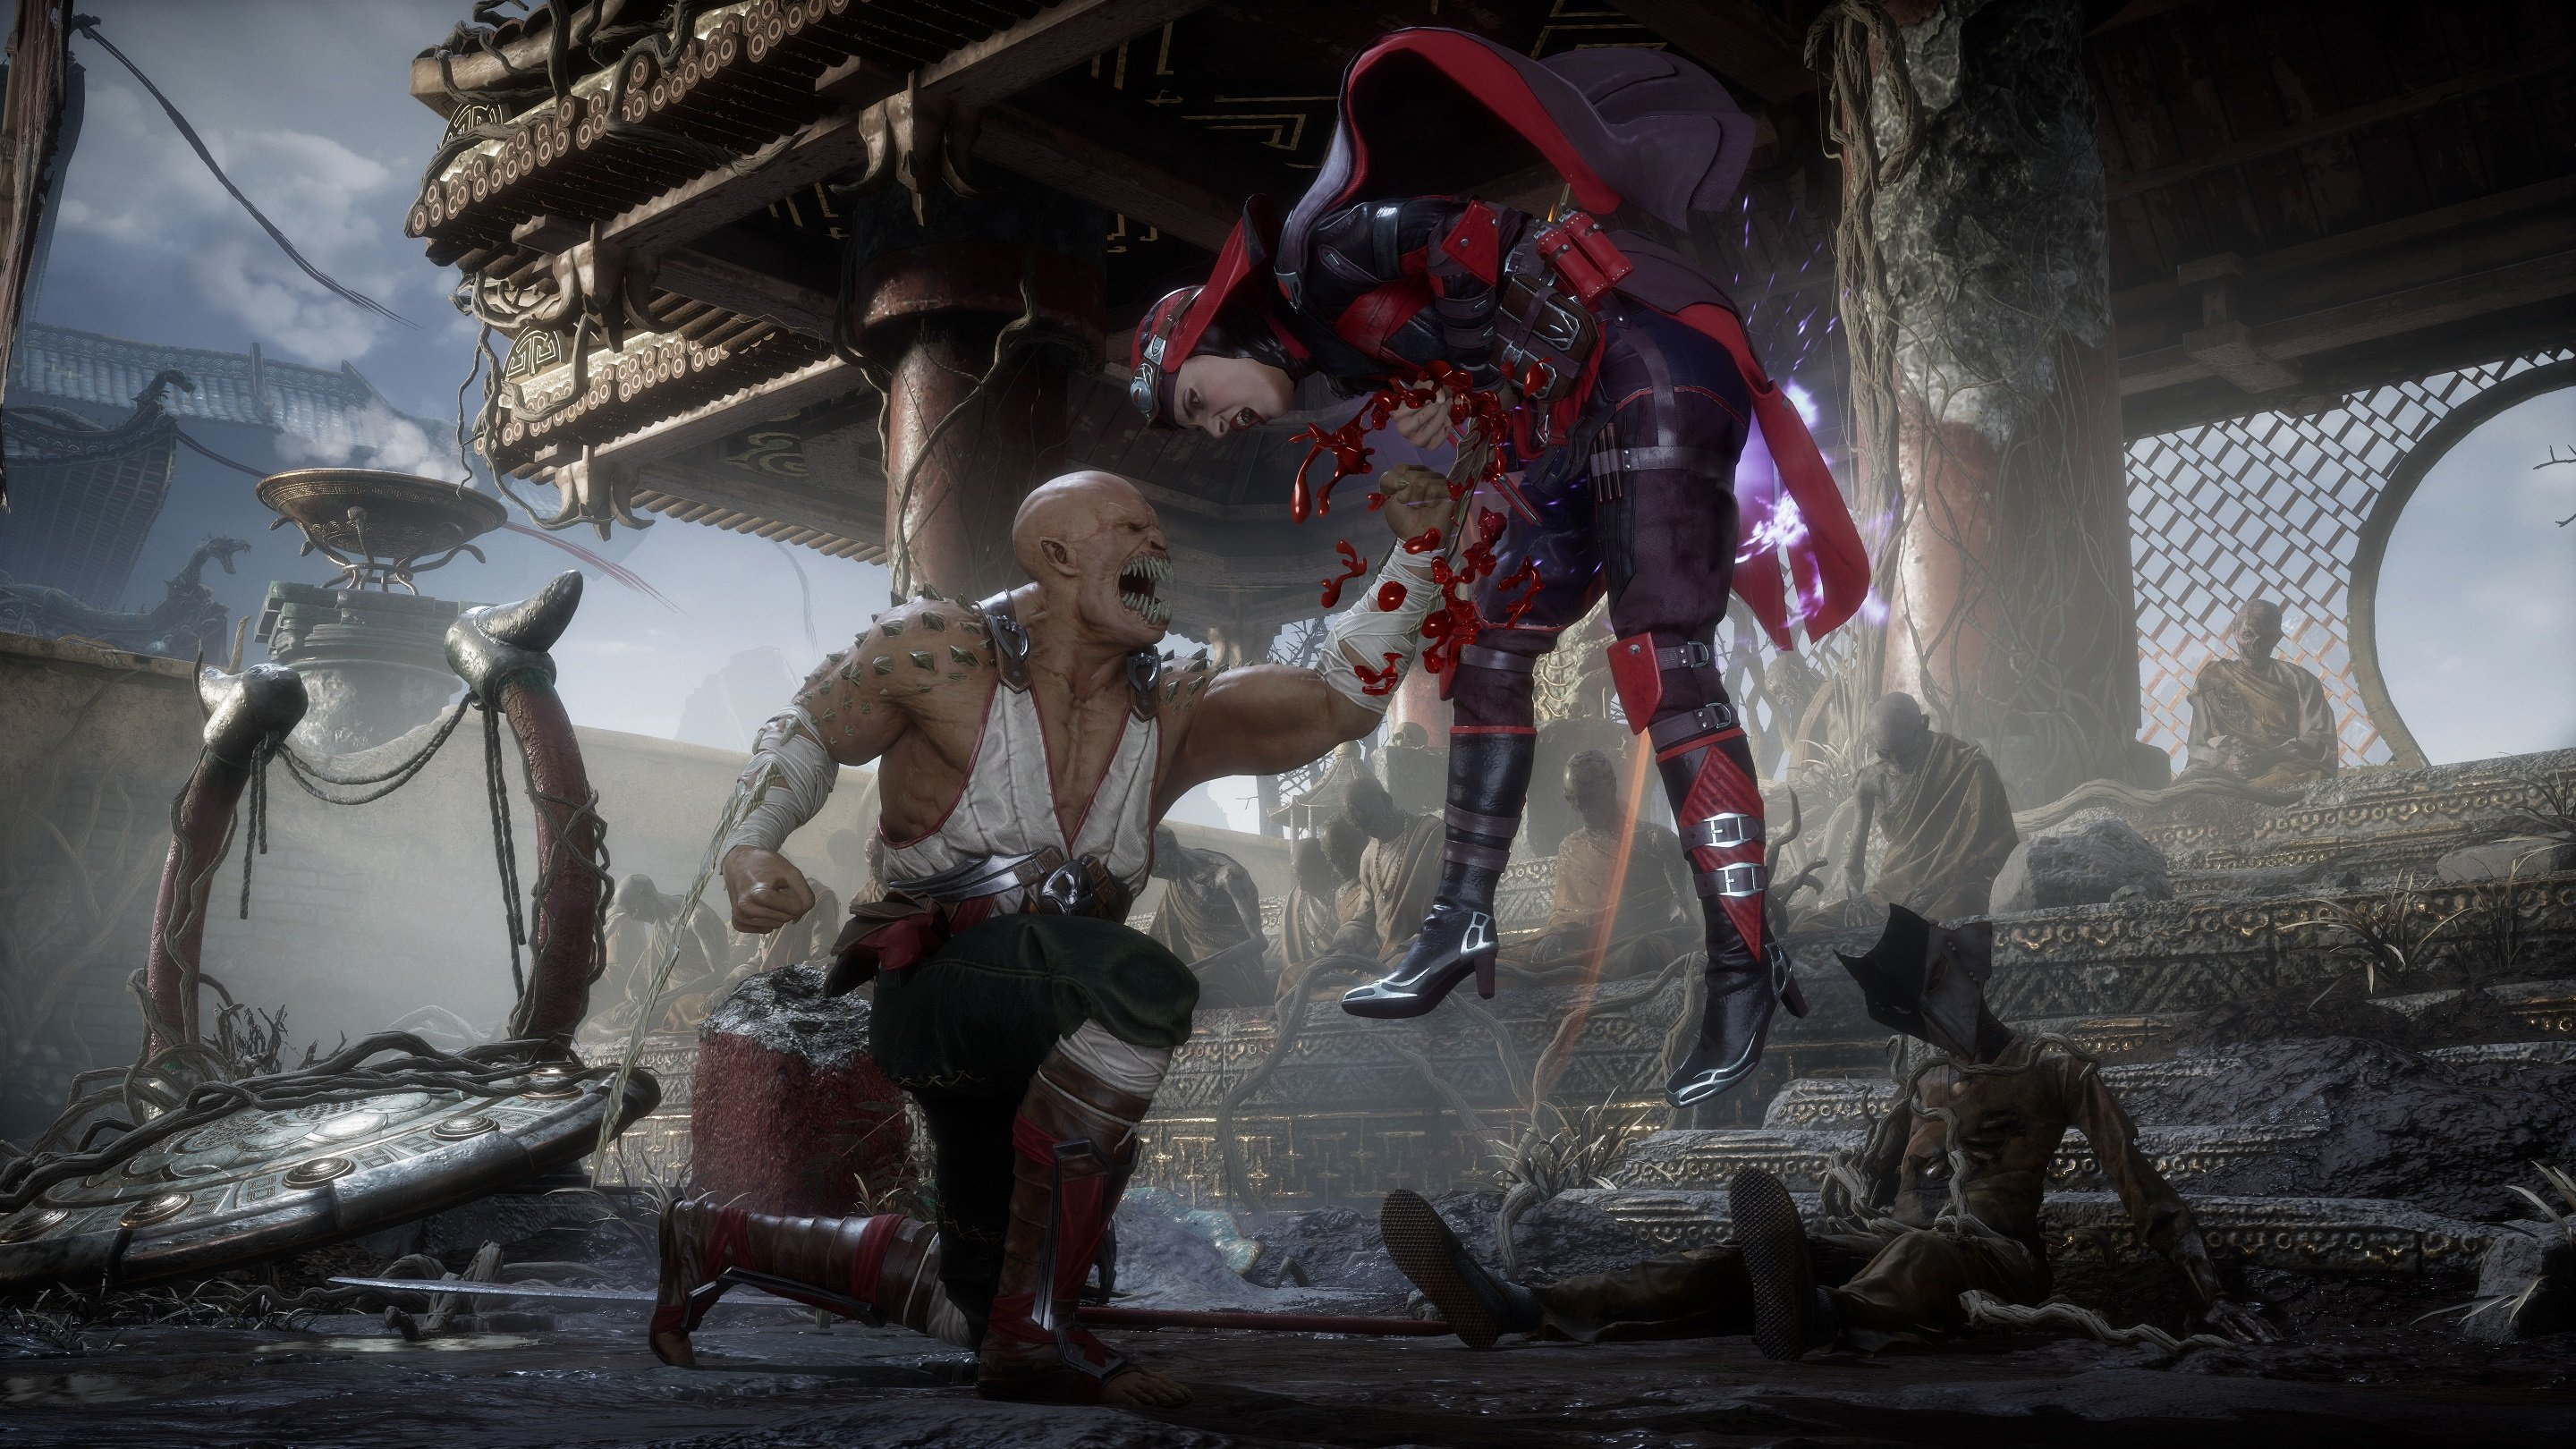 Mortal Kombat 11 tracks your progress through an automatic save system.